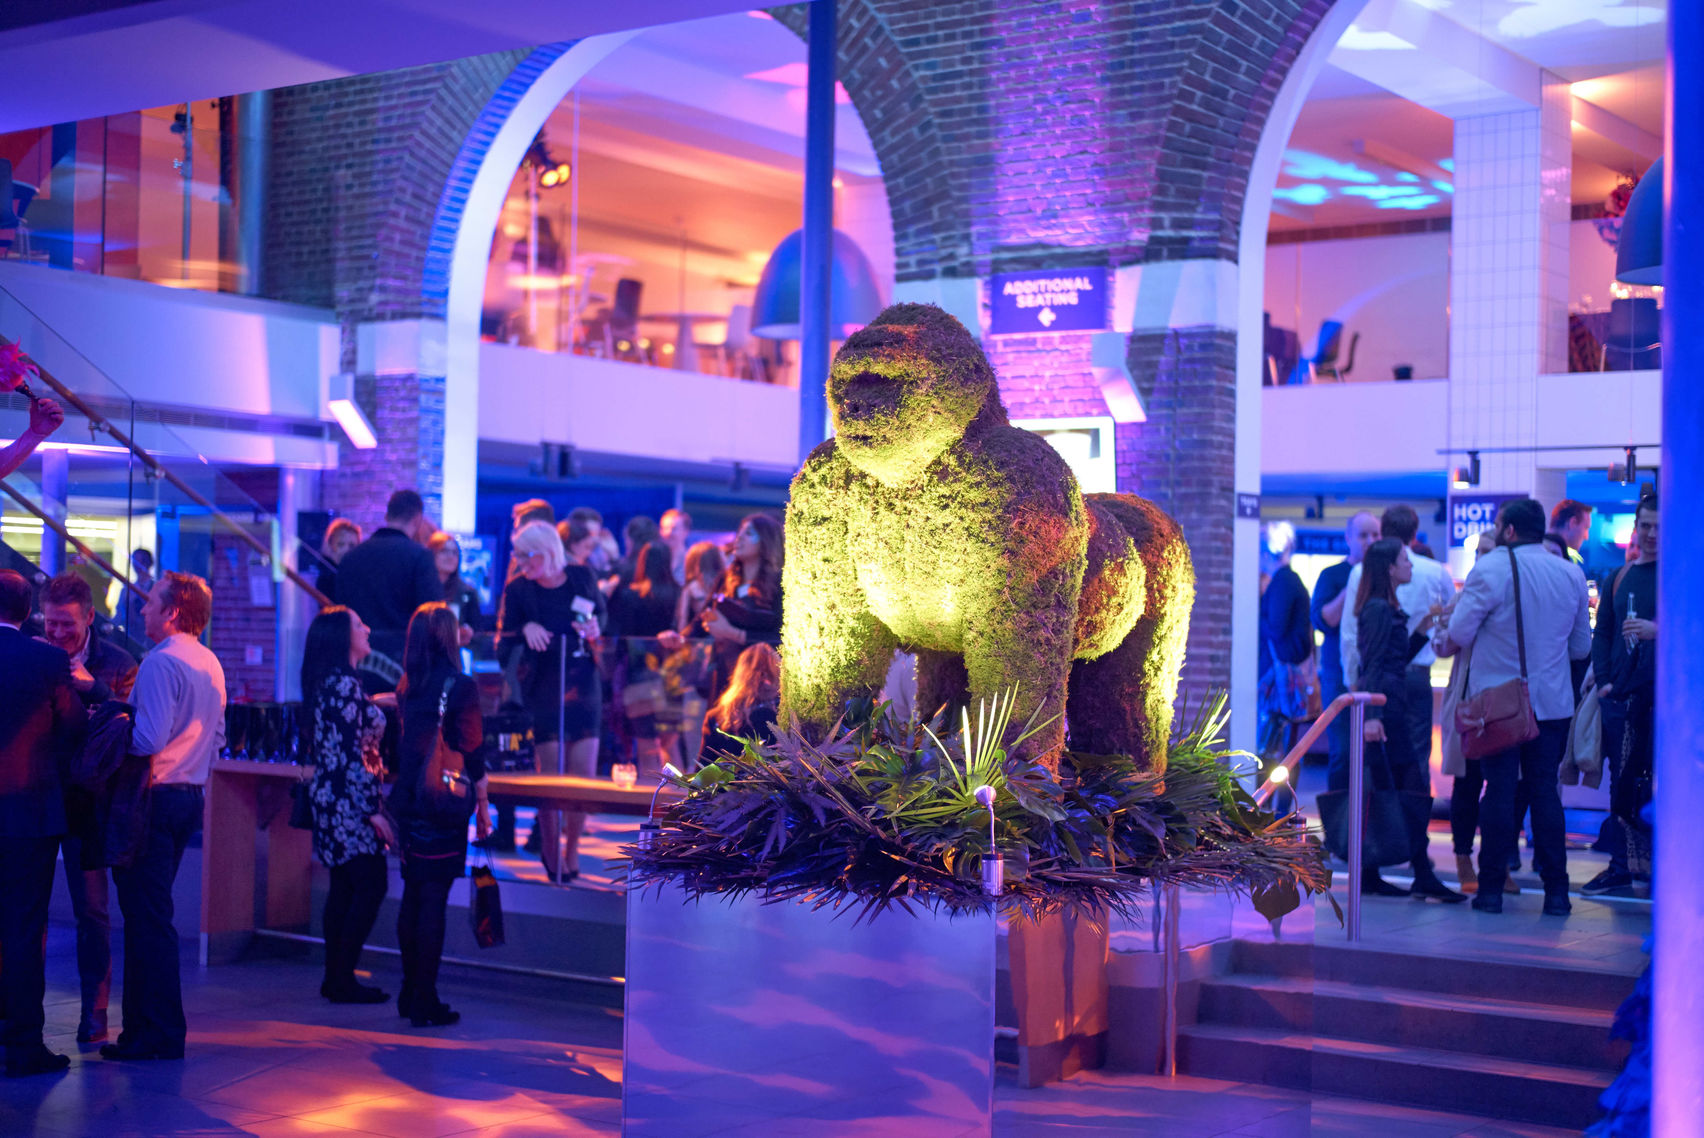 The space is of the terrace at ZSL. A large event space with arched walls and high ceilings. The room is full of people but the focus point is the gorilla in the middle which is lit up in yellow light.